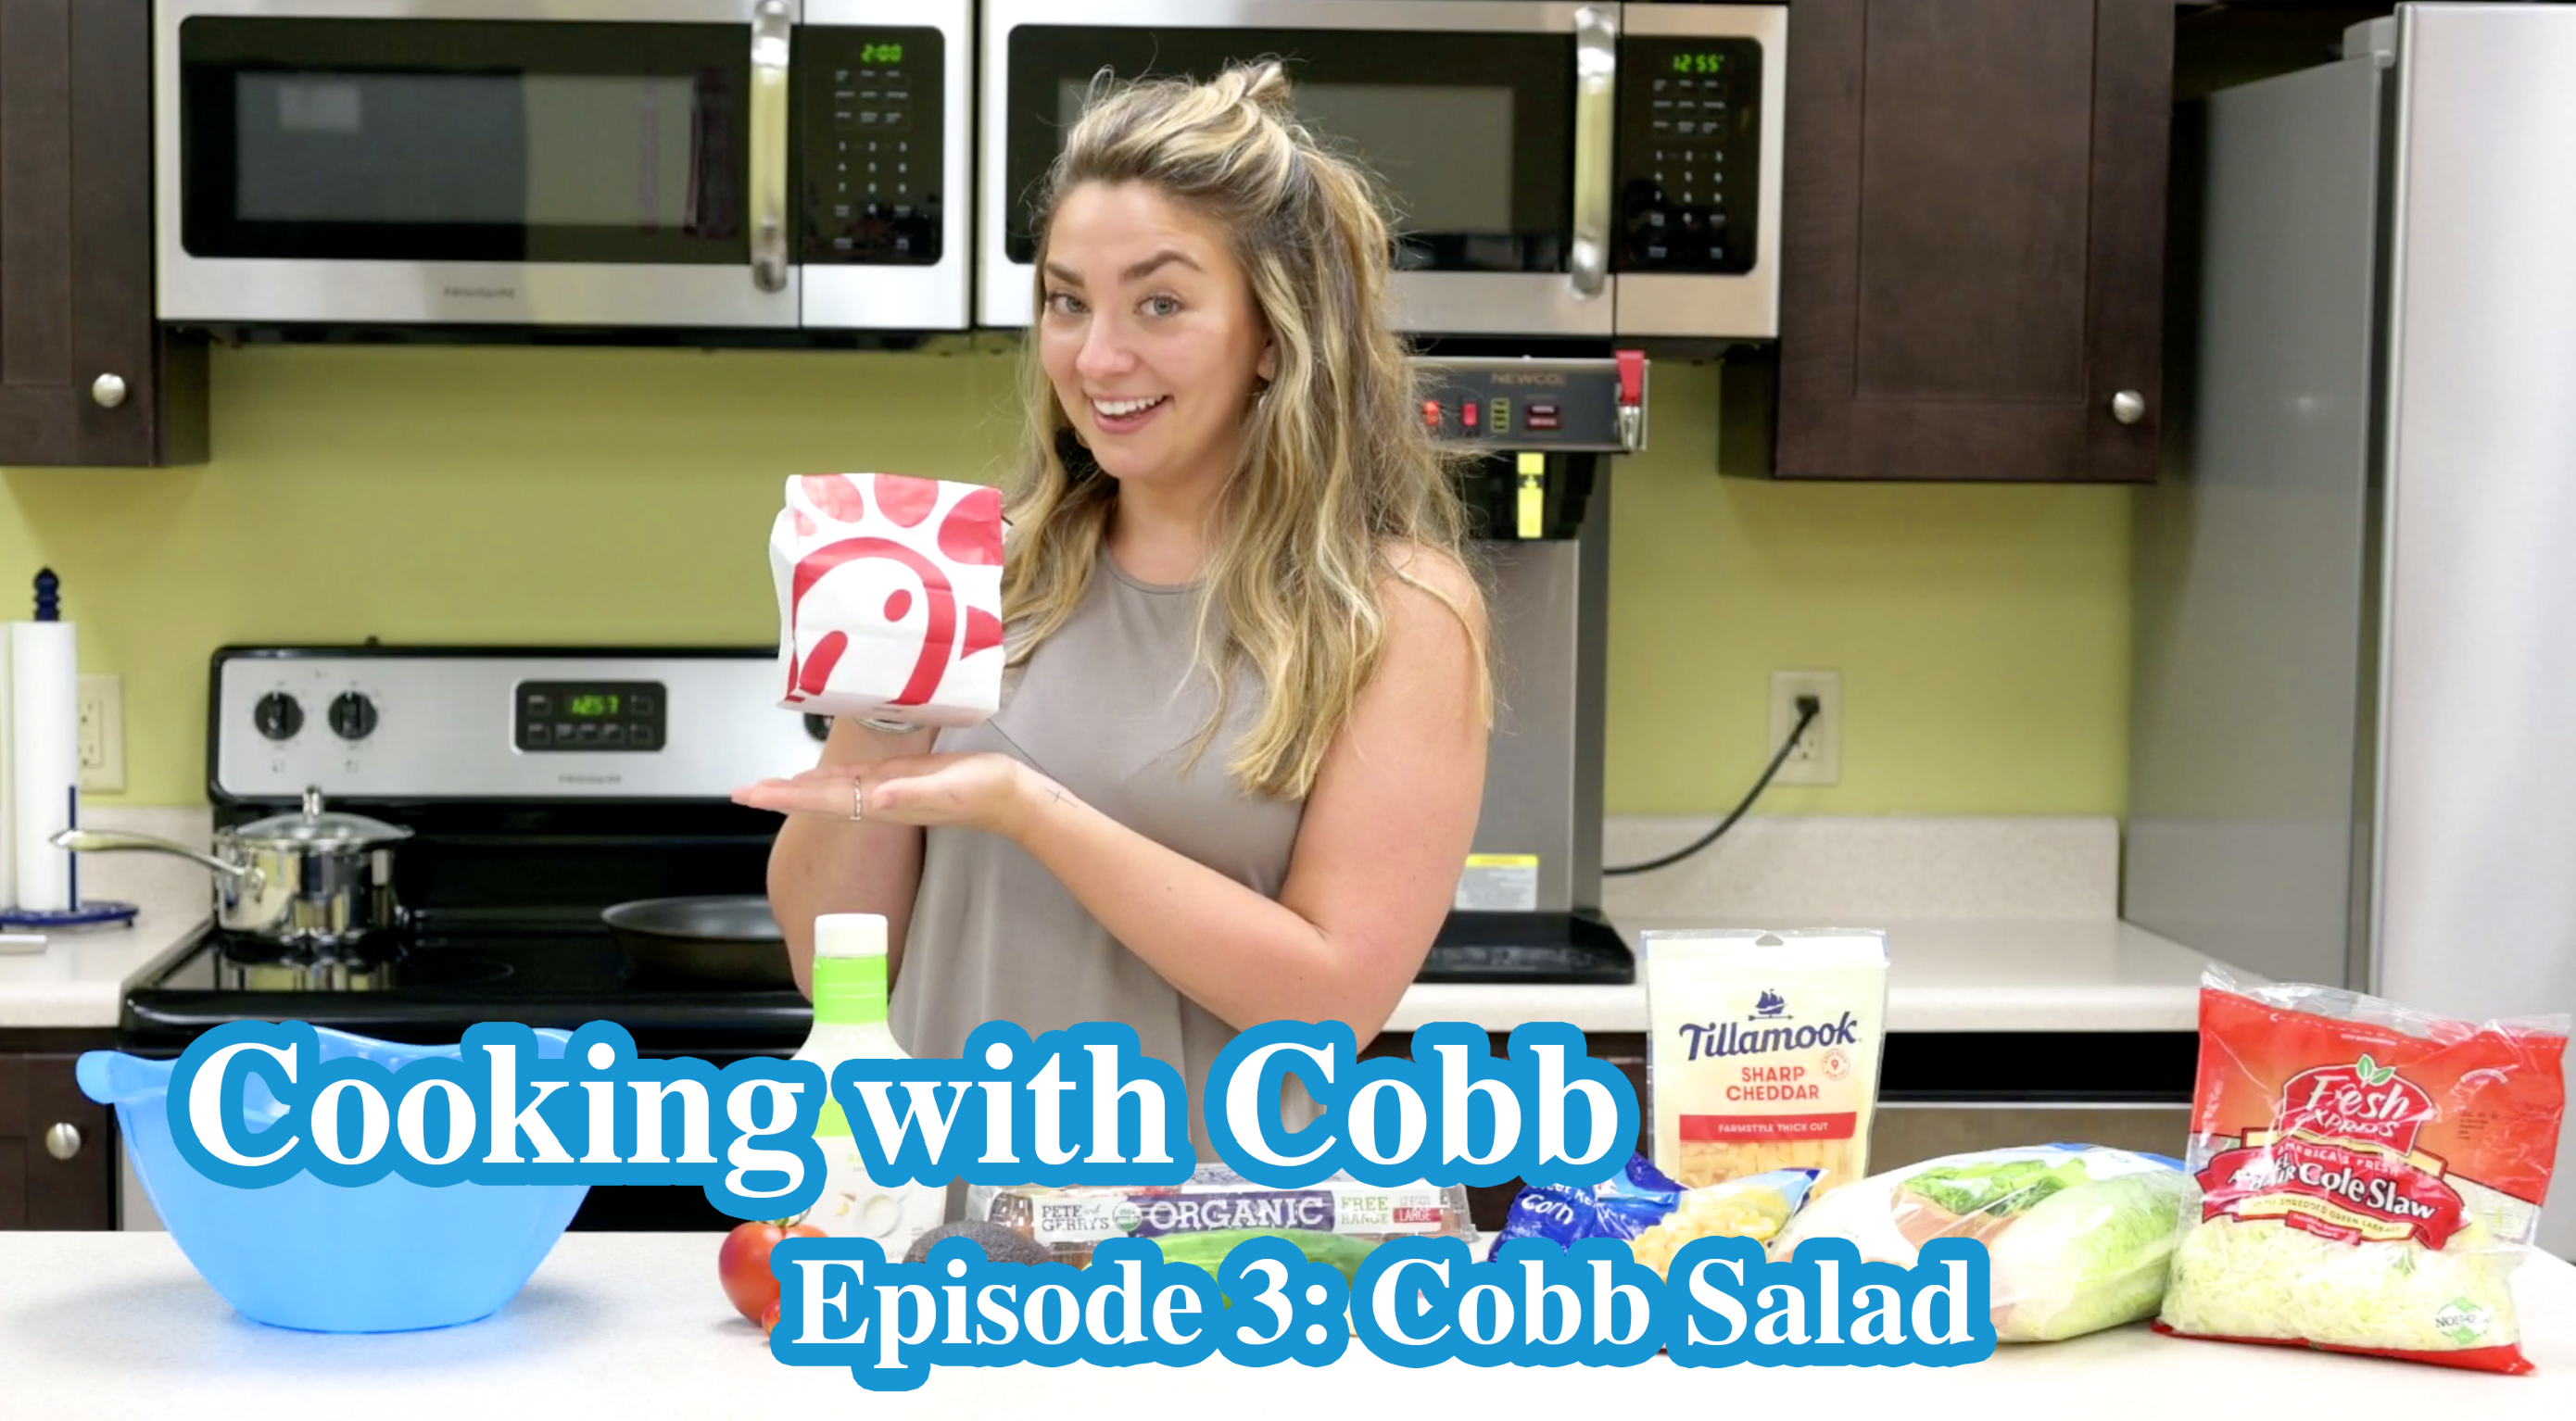 Cooking with Cobb - Episode 3 Cobb Salad